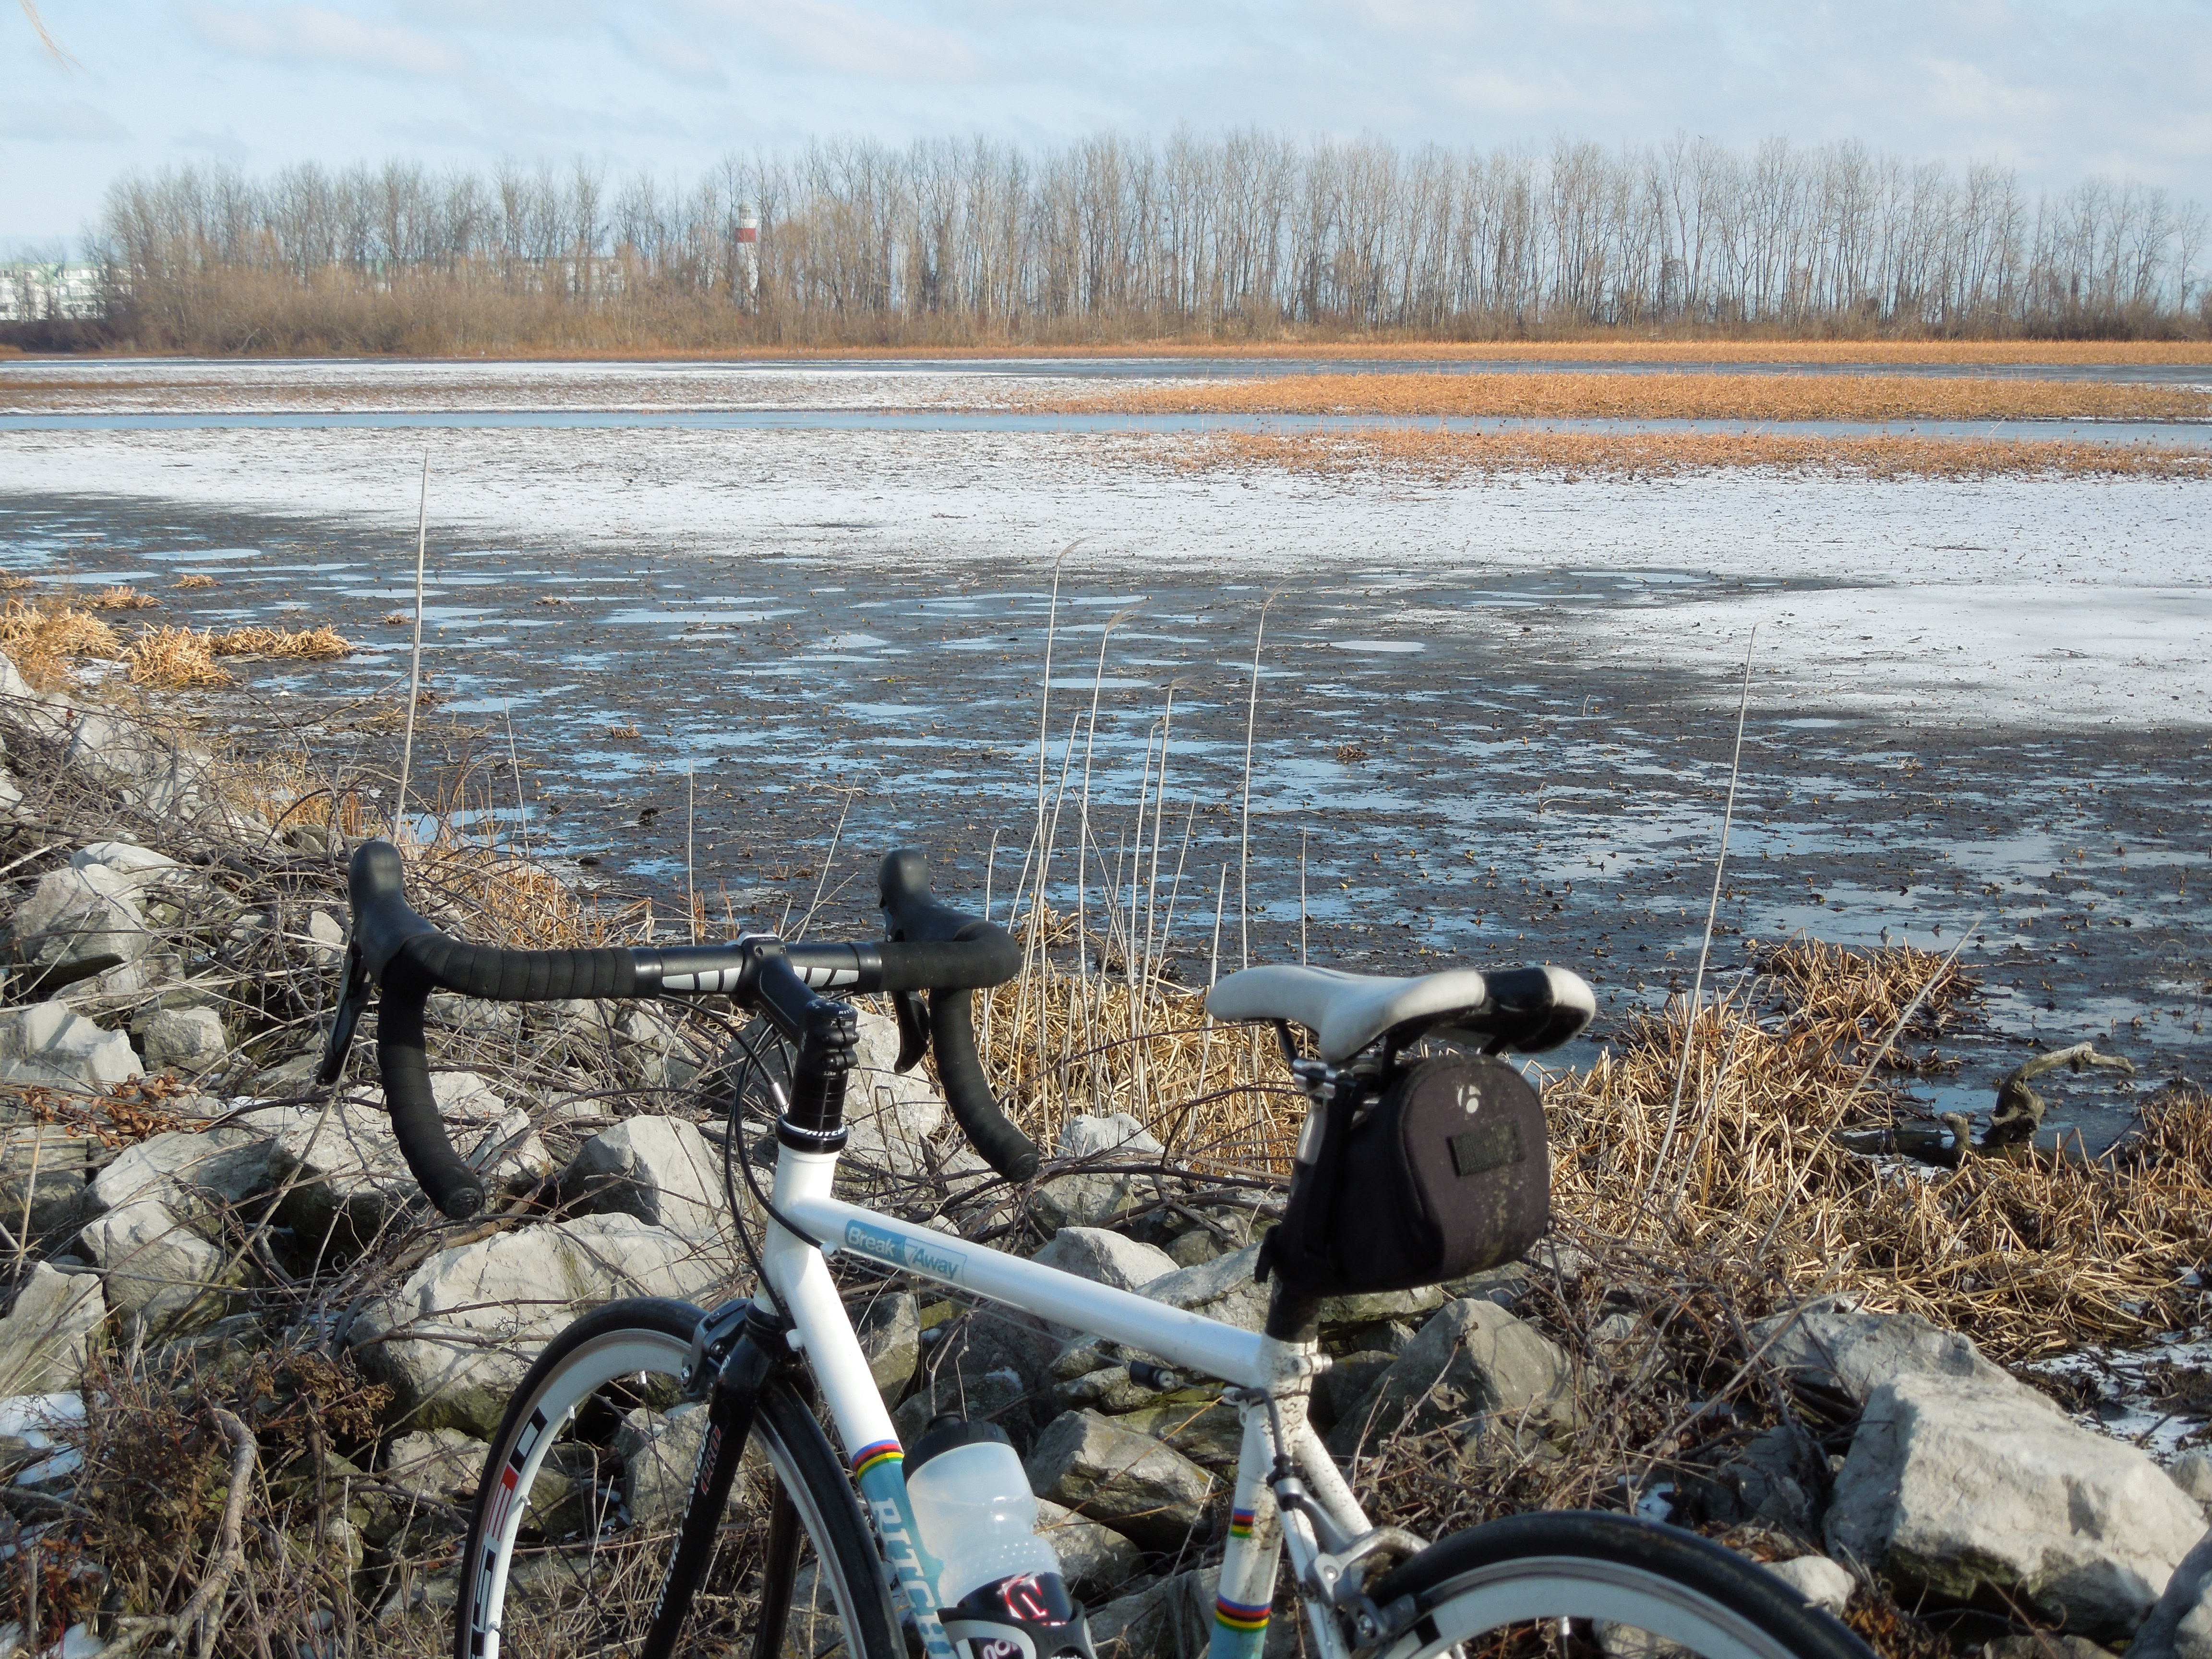 Cycling along Lake Erie in northern Ohio during the winter.